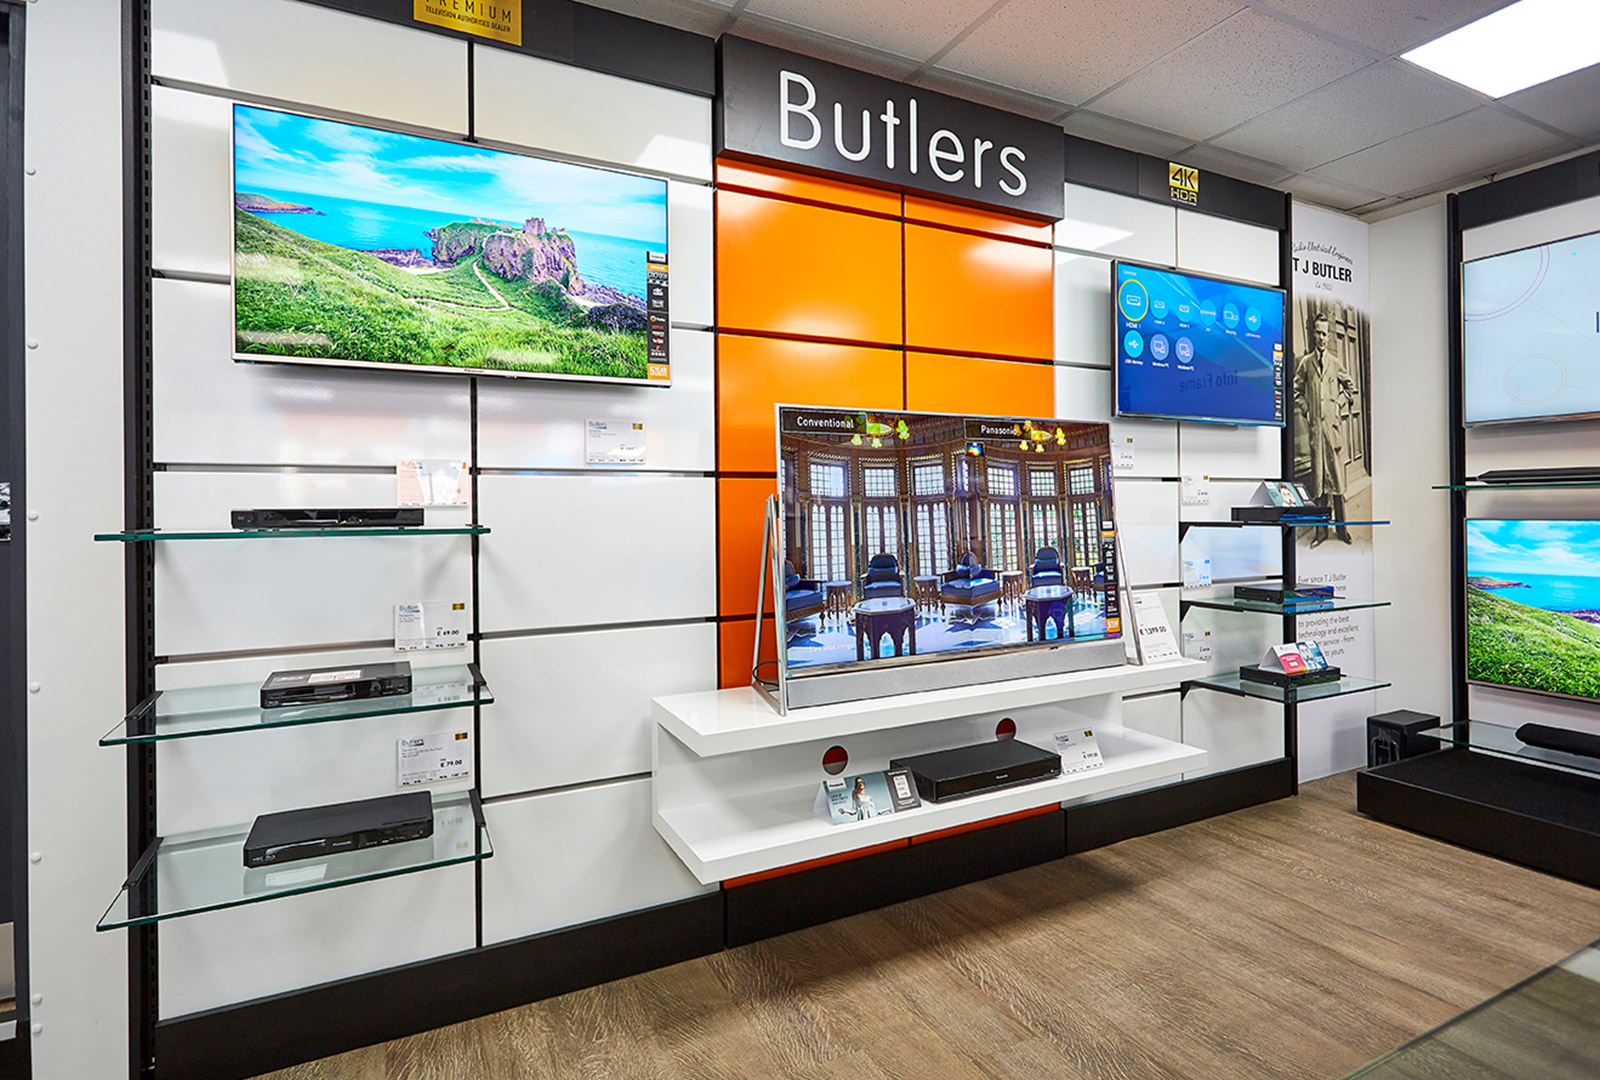 Butlers Electrical - Shotton Store Refit Case Study   Replan - The